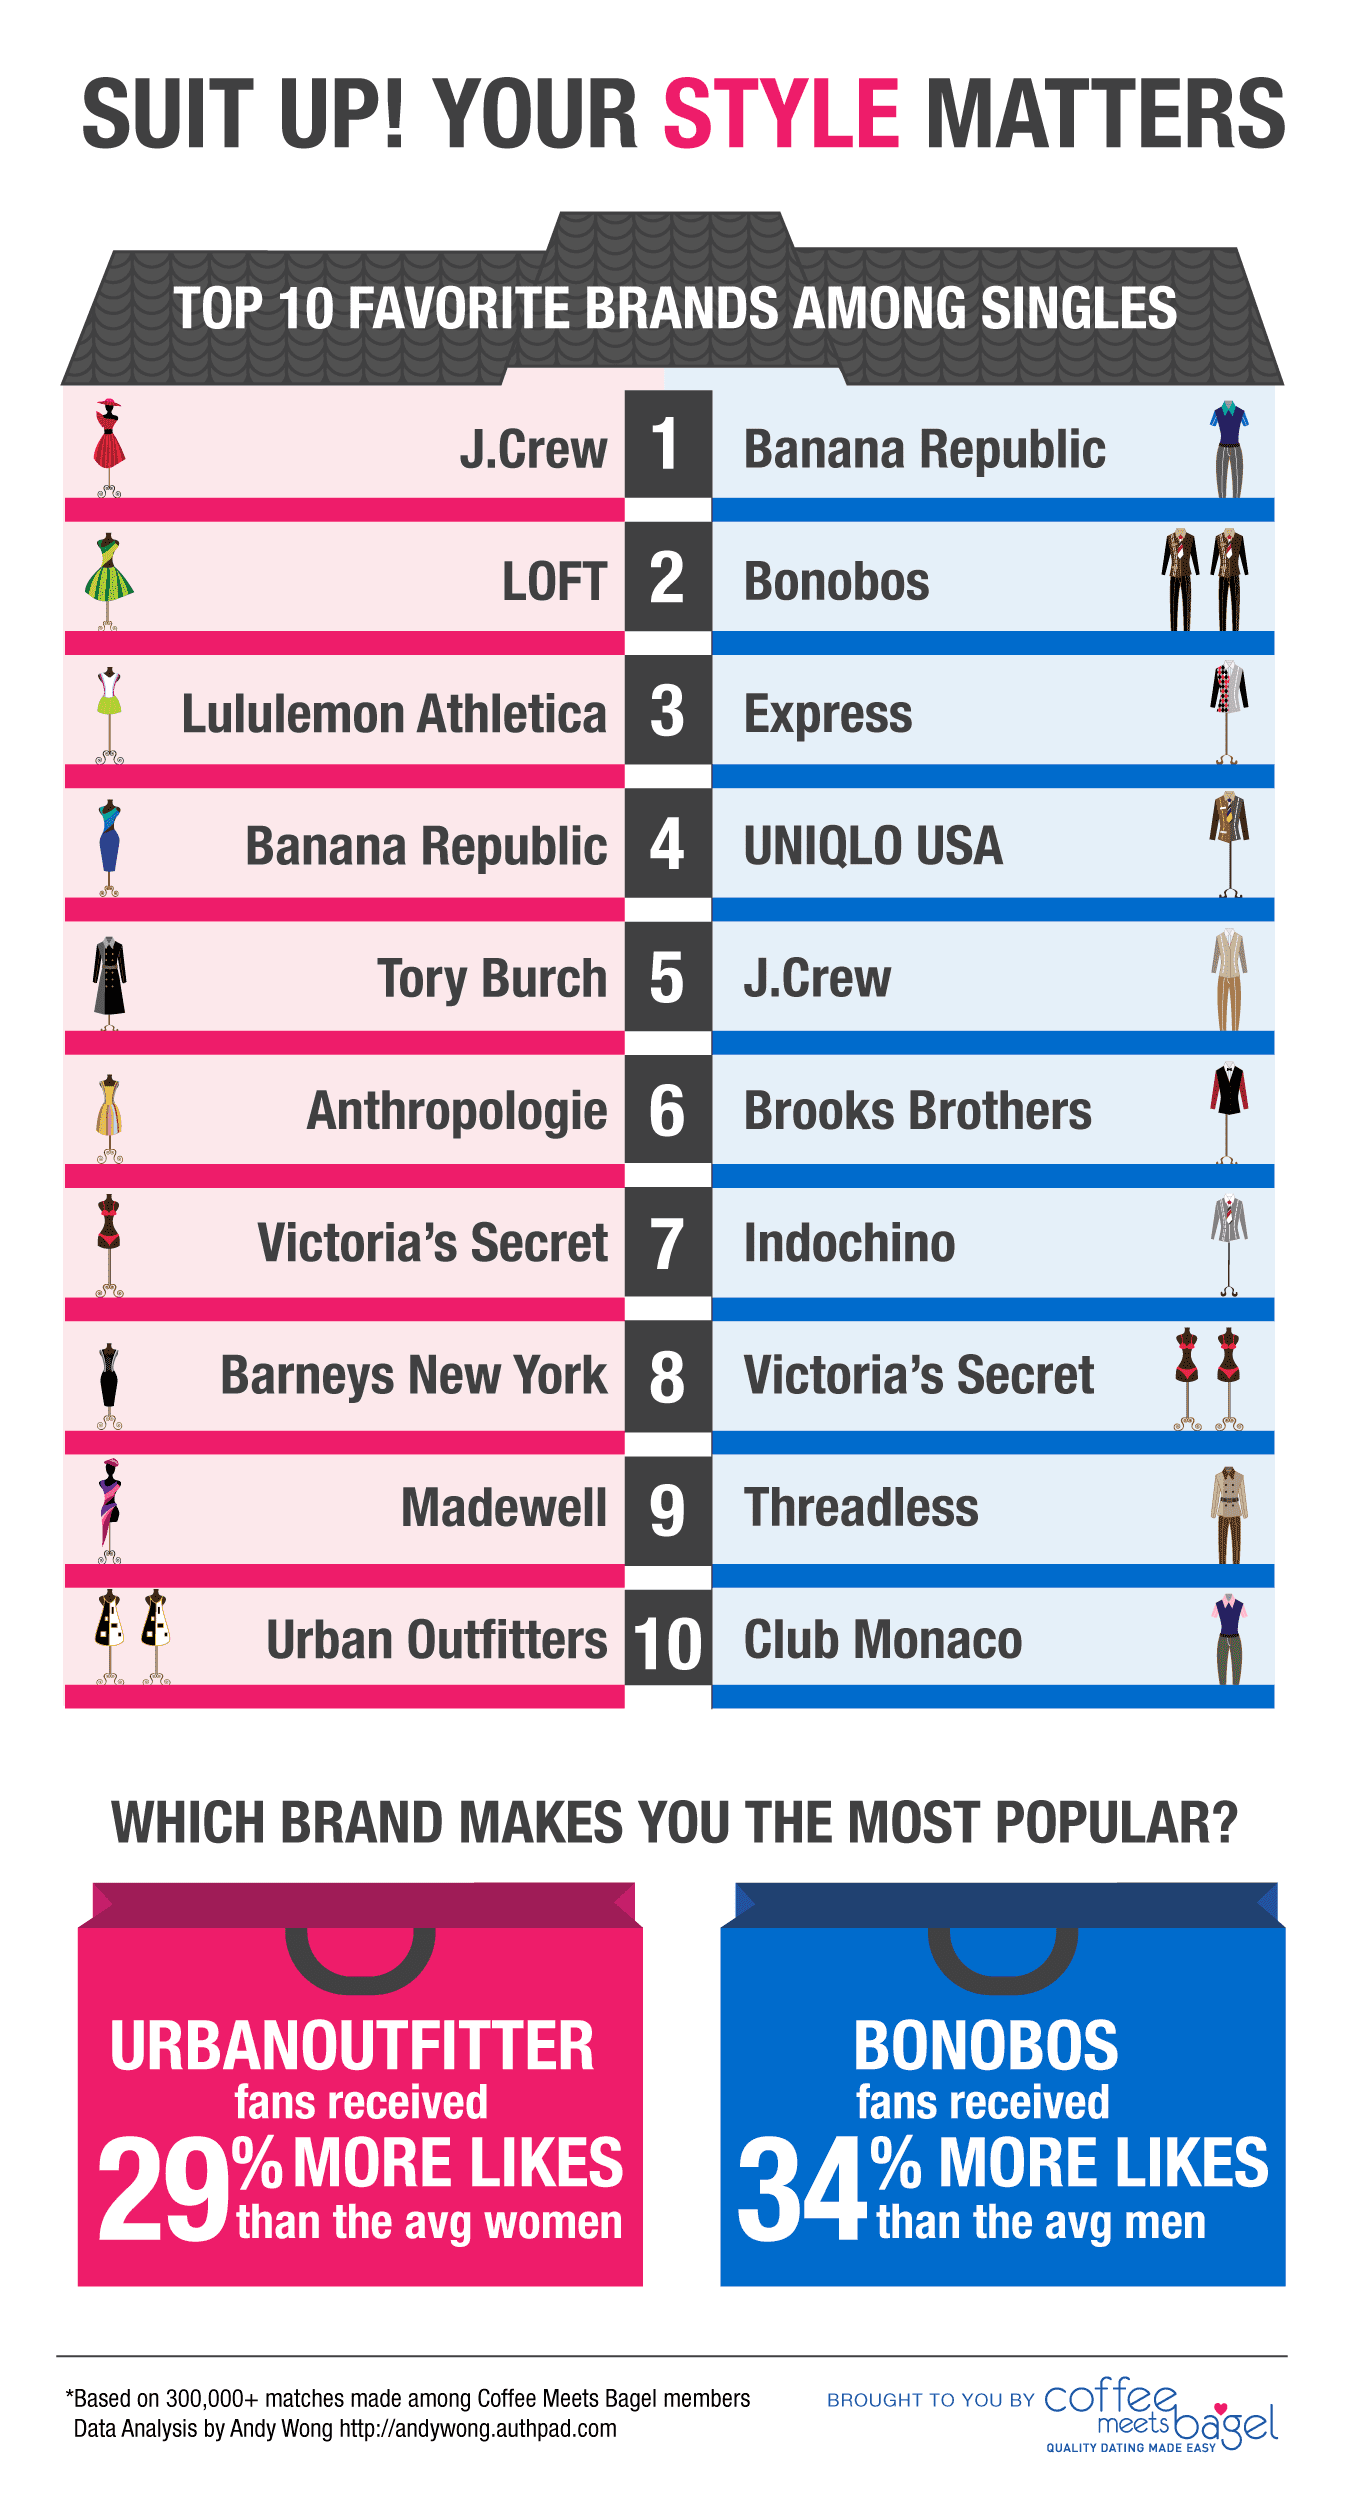 Top 10 Fashion Brands Among Singles